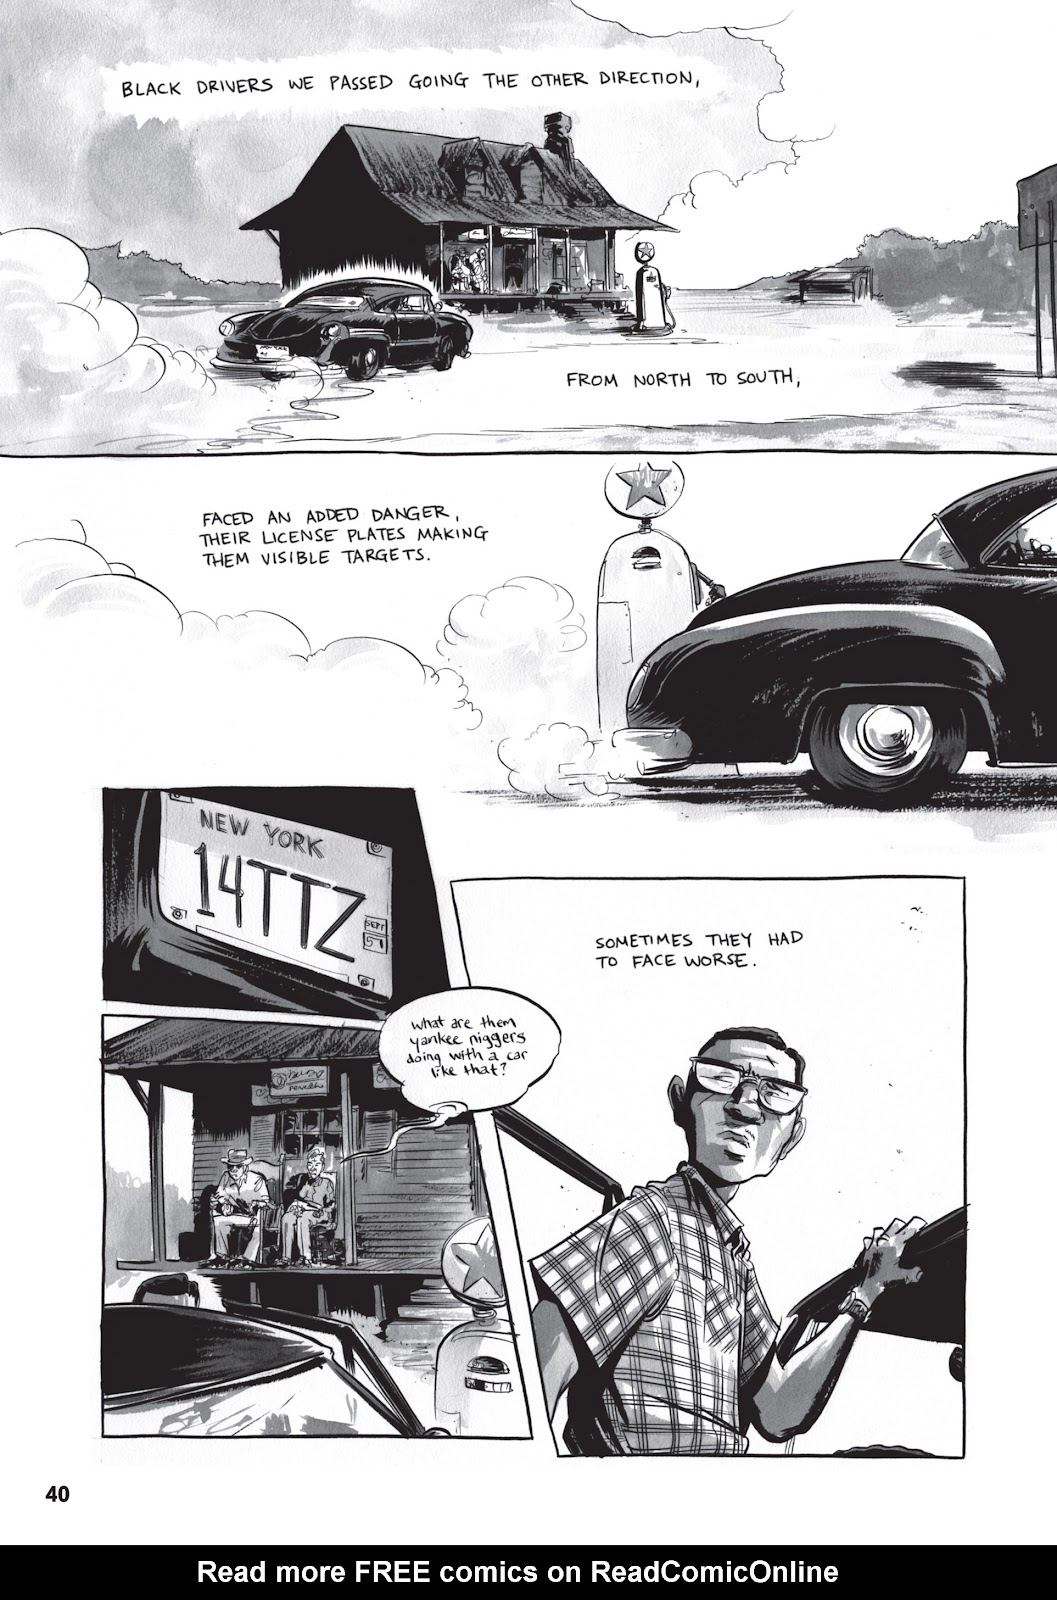 March 1 Page 37